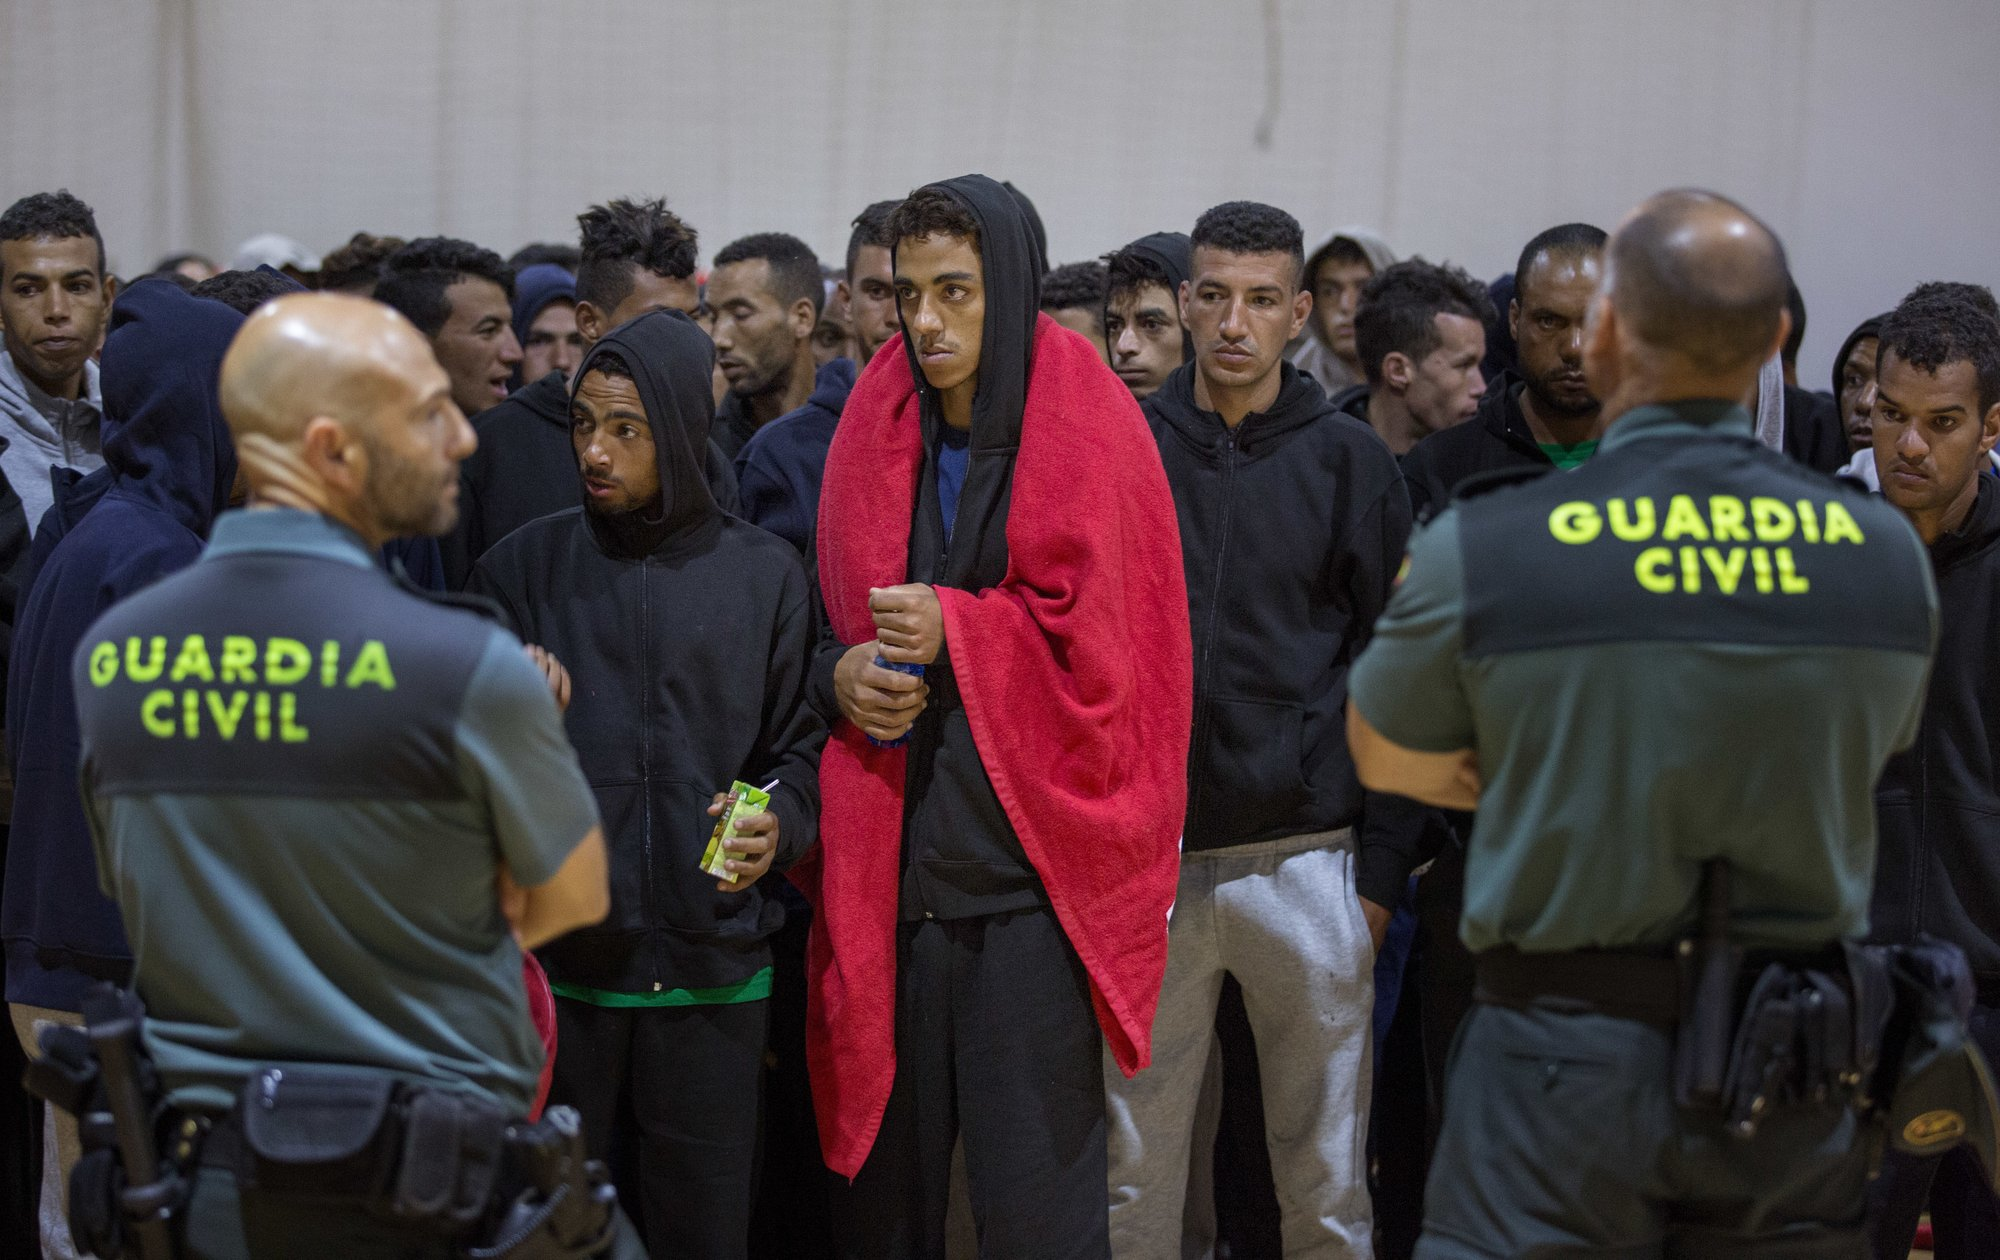 Migrant arrivals plunge in Spain after deals with Morocco